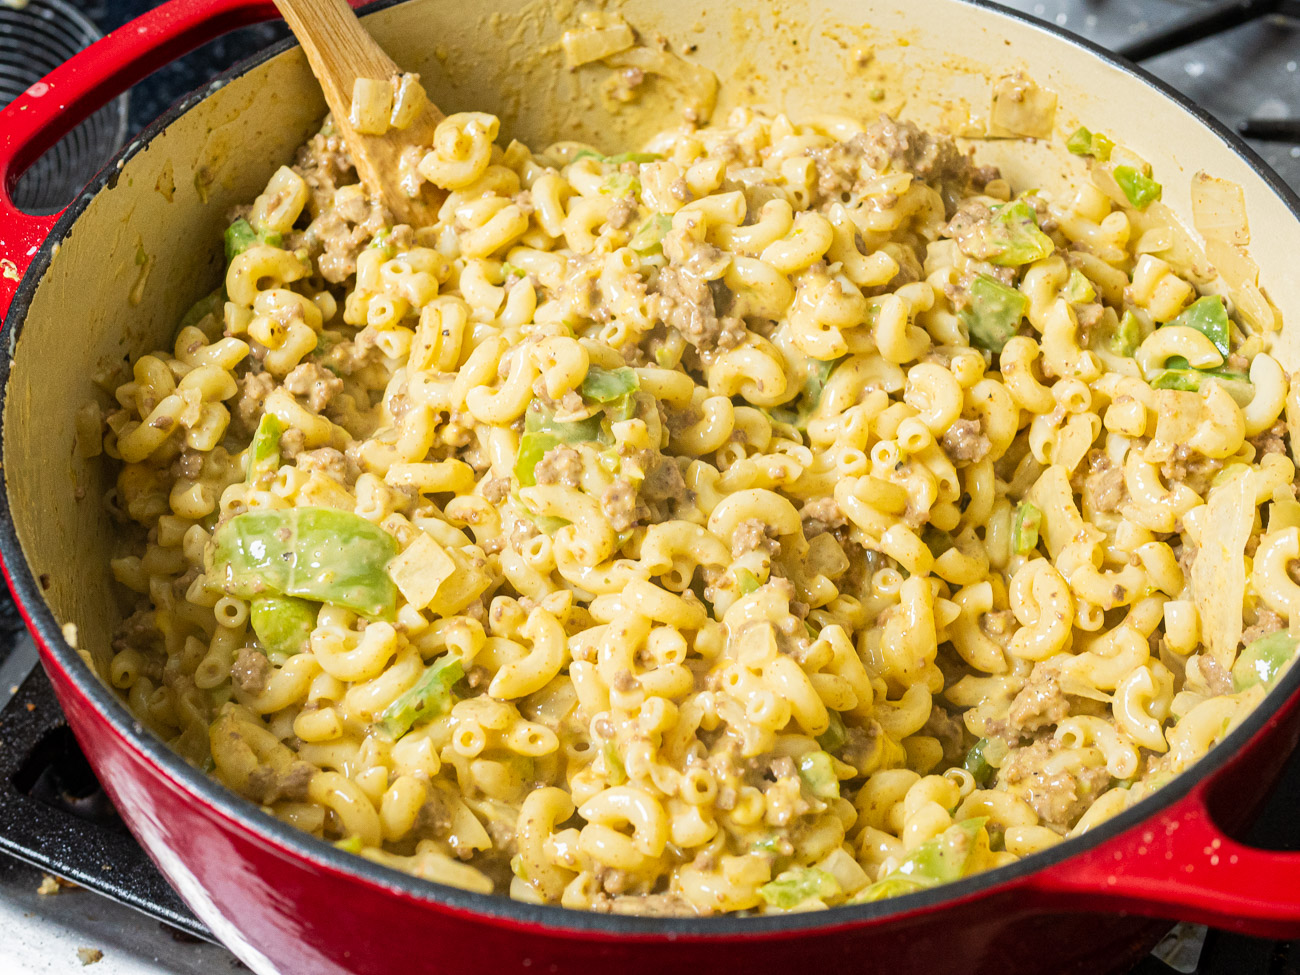 Once onions and peppers are done cooking, stir in ground beef mixture. Slice up Velveeta and add to the same skillet, stirring until melted and smooth.